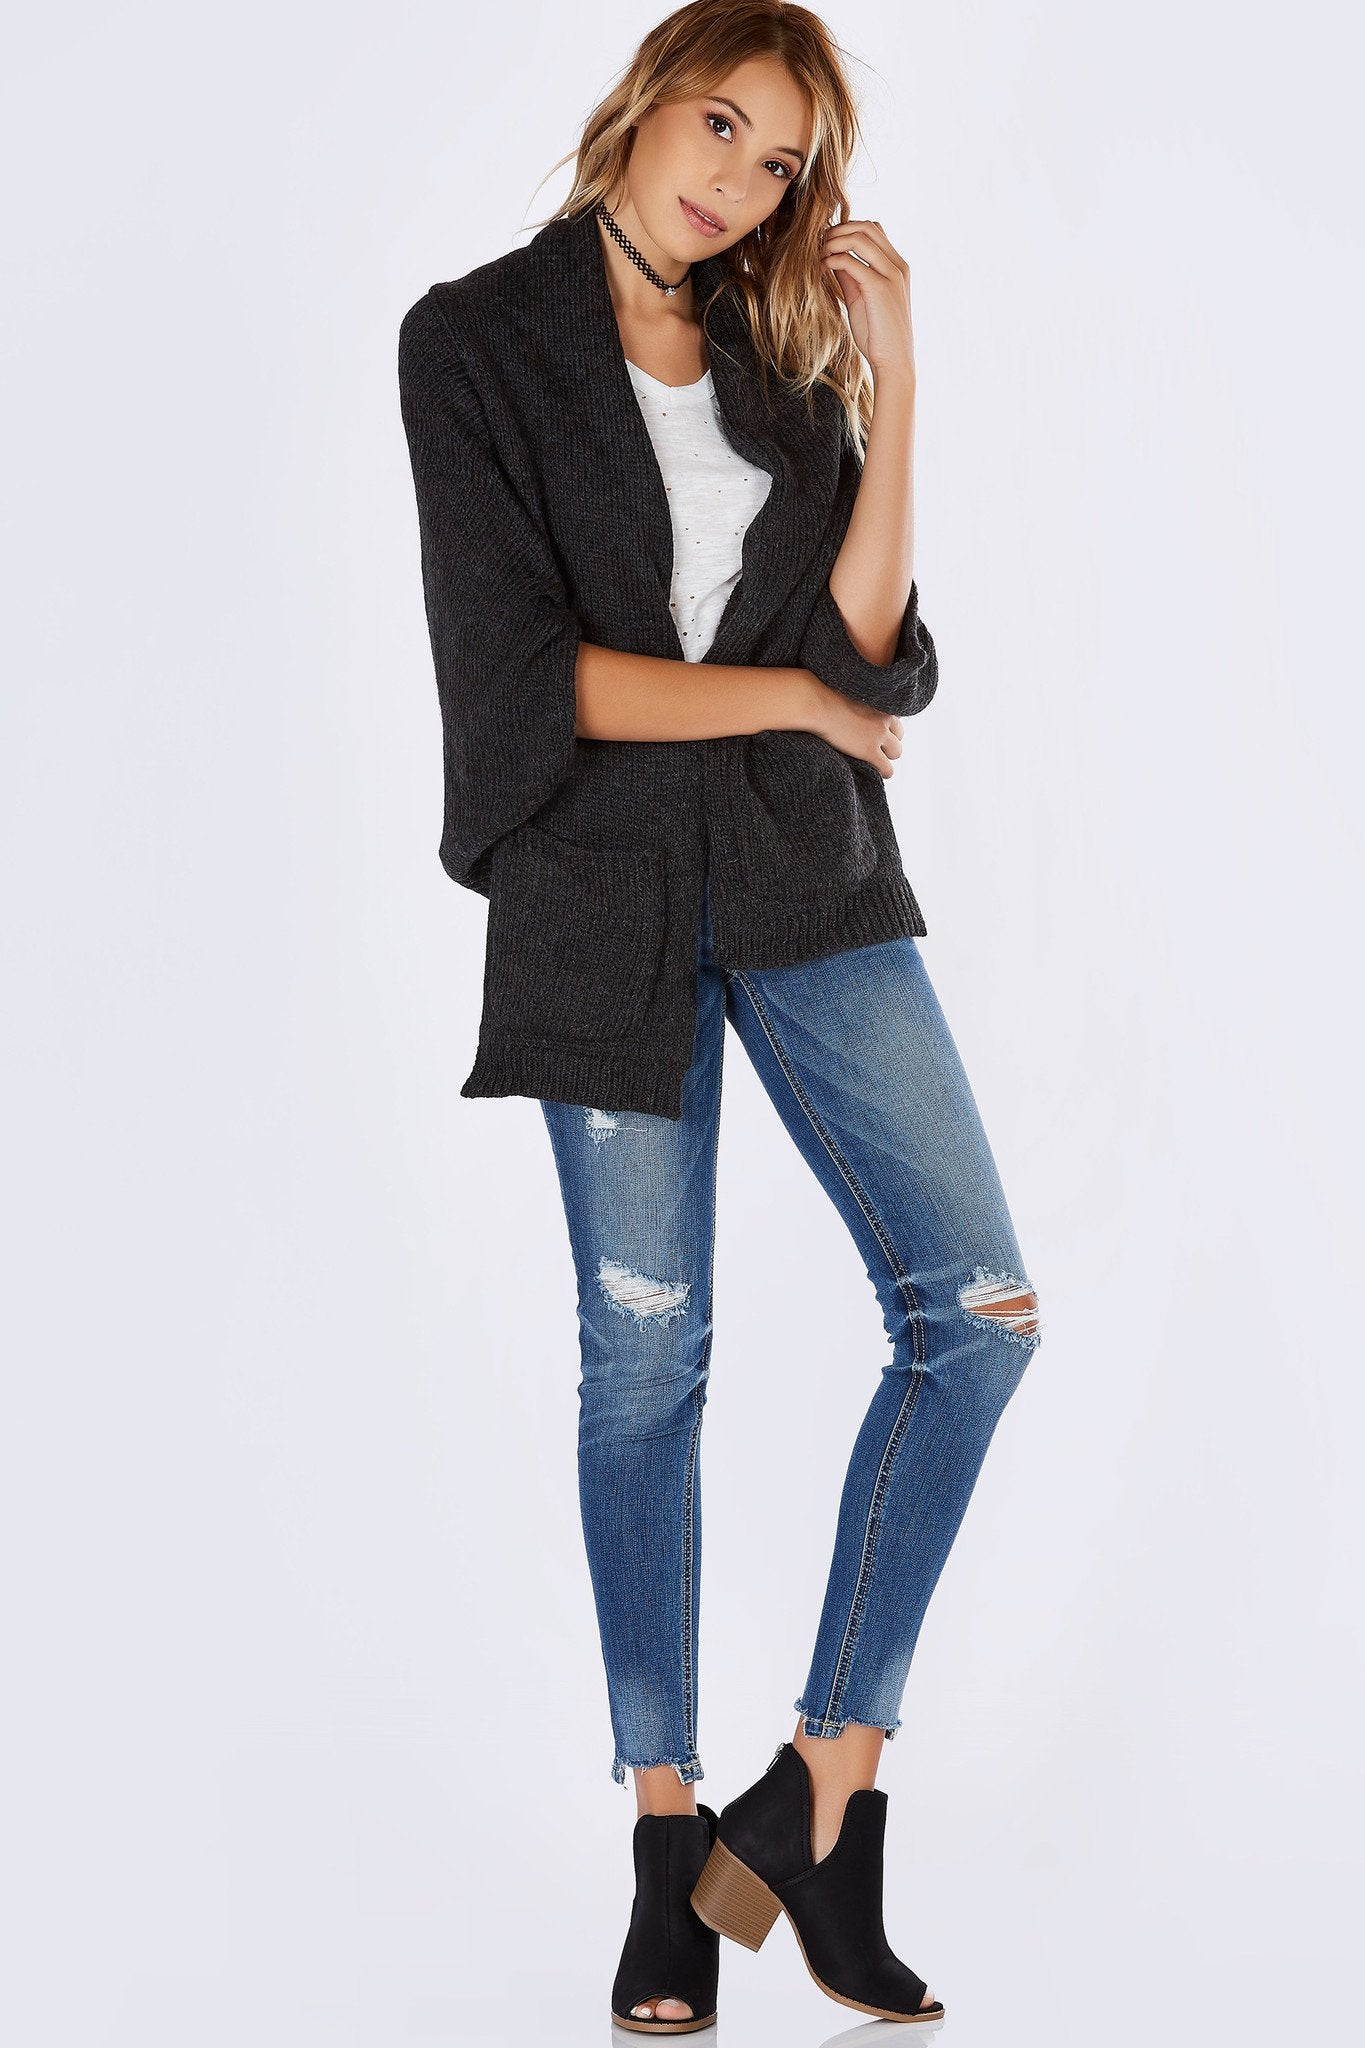 A super cozy cardigan perfect for the upcoming Season! Warm draped collar with an open front. Batwing sleeves with side slits for an unexpected twist. Functional pockets to keep your personal belongings safe. Throw on over a basic cami and denim jeans!